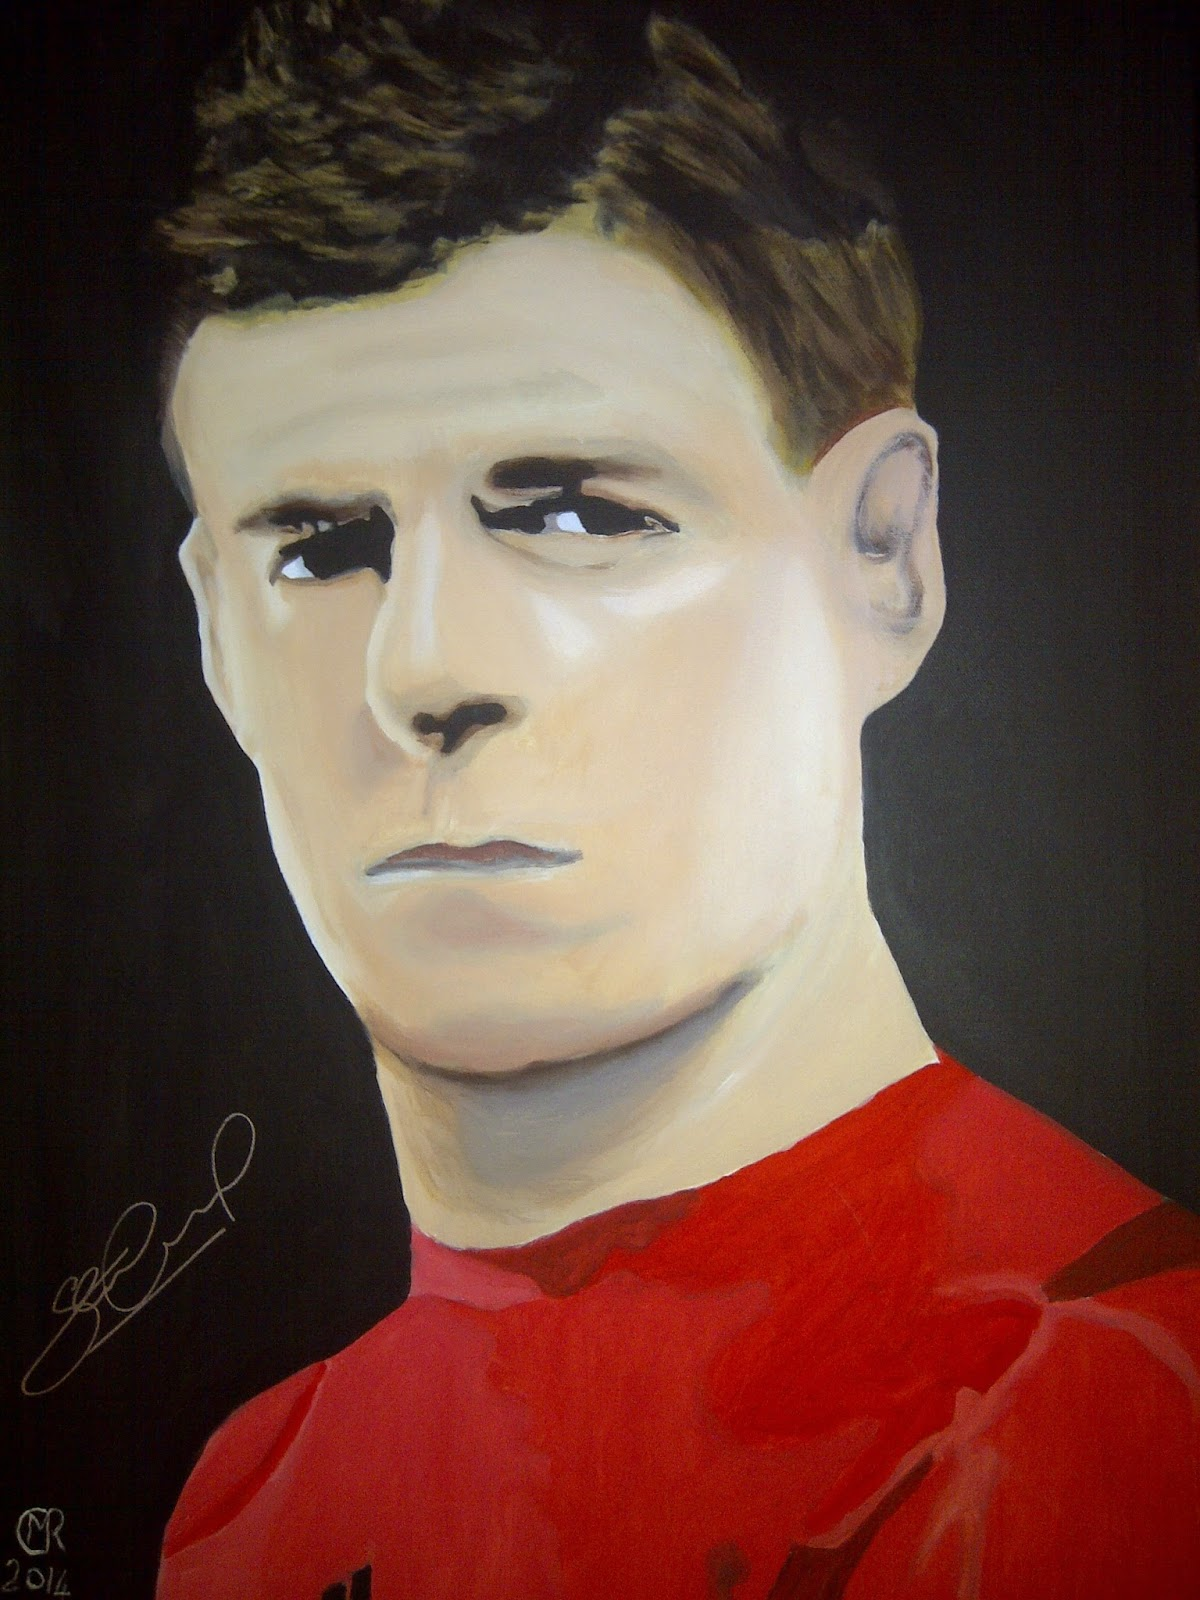 This Steven Gerrard portrait made by blind veteran